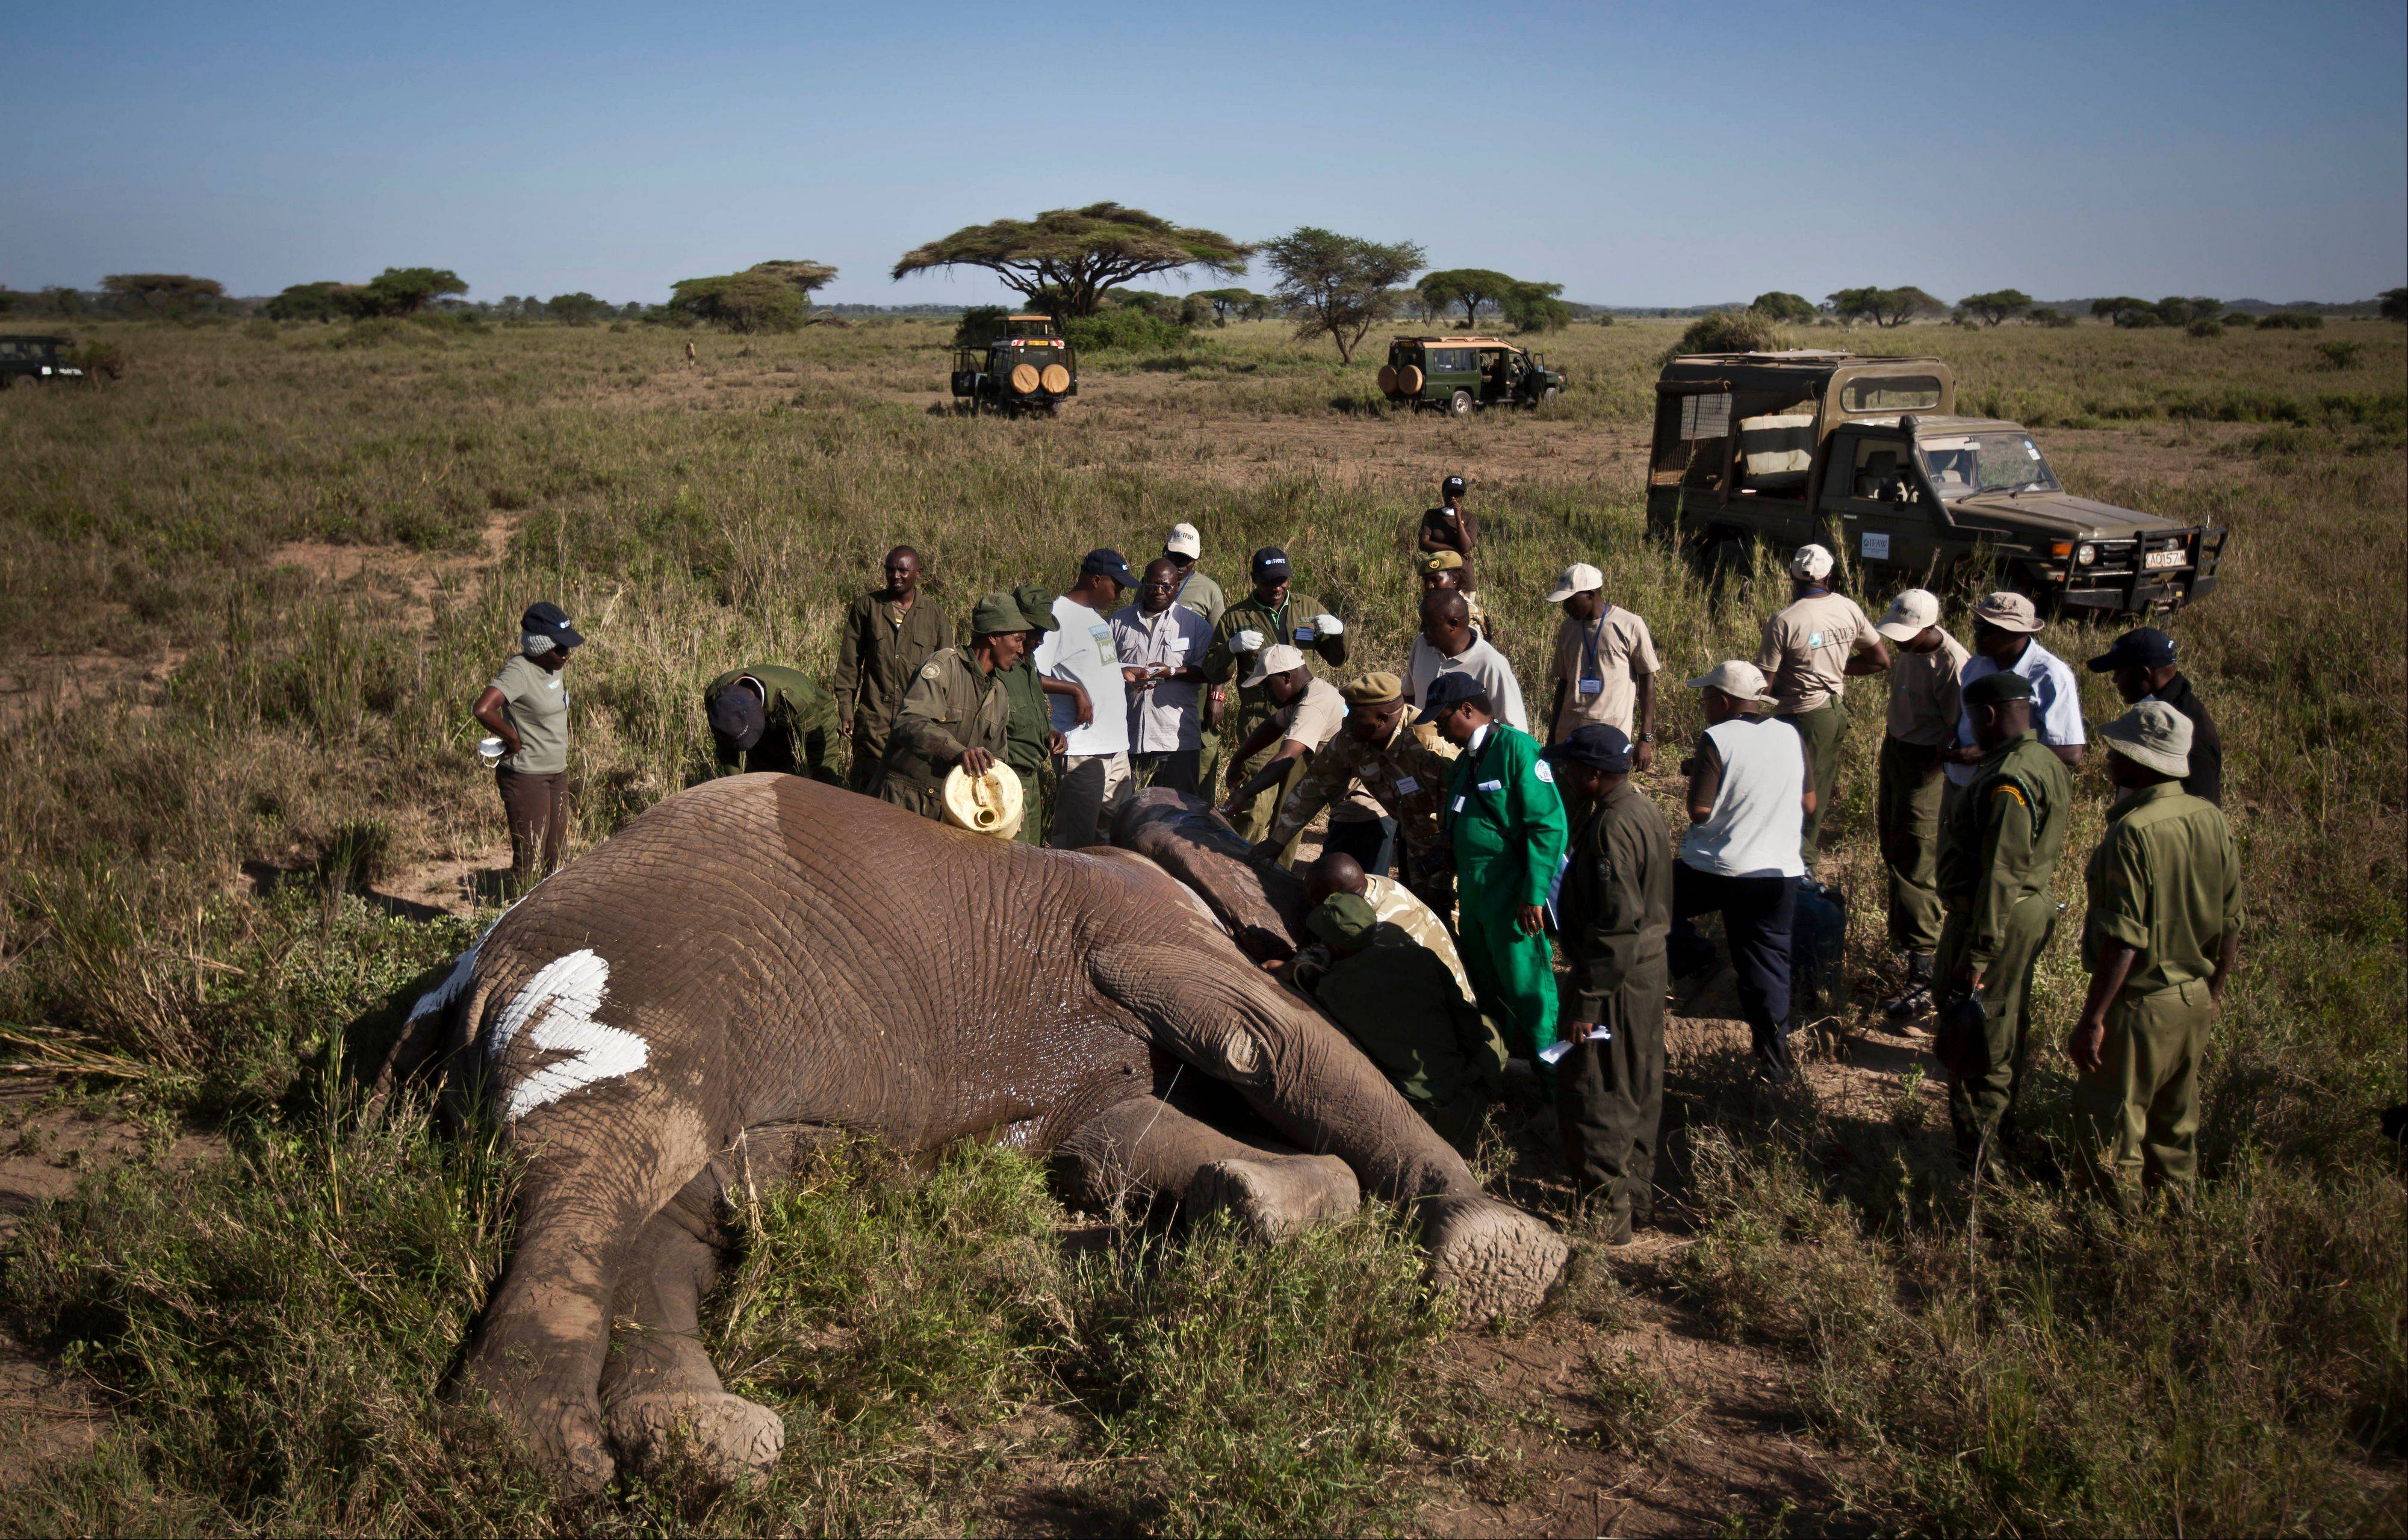 The Kenya Wildlife Service (KWS) and the International Fund for Animal Welfare (IFAW) teams fit a GPS-tracking collar onto a tranquilized 26-year-old male elephant, to monitor migration routes and to help prevent poaching, at the Kimana Wildlife Sanctuary next to Amboseli National Park in southern Kenya, near the border with Tanzania.